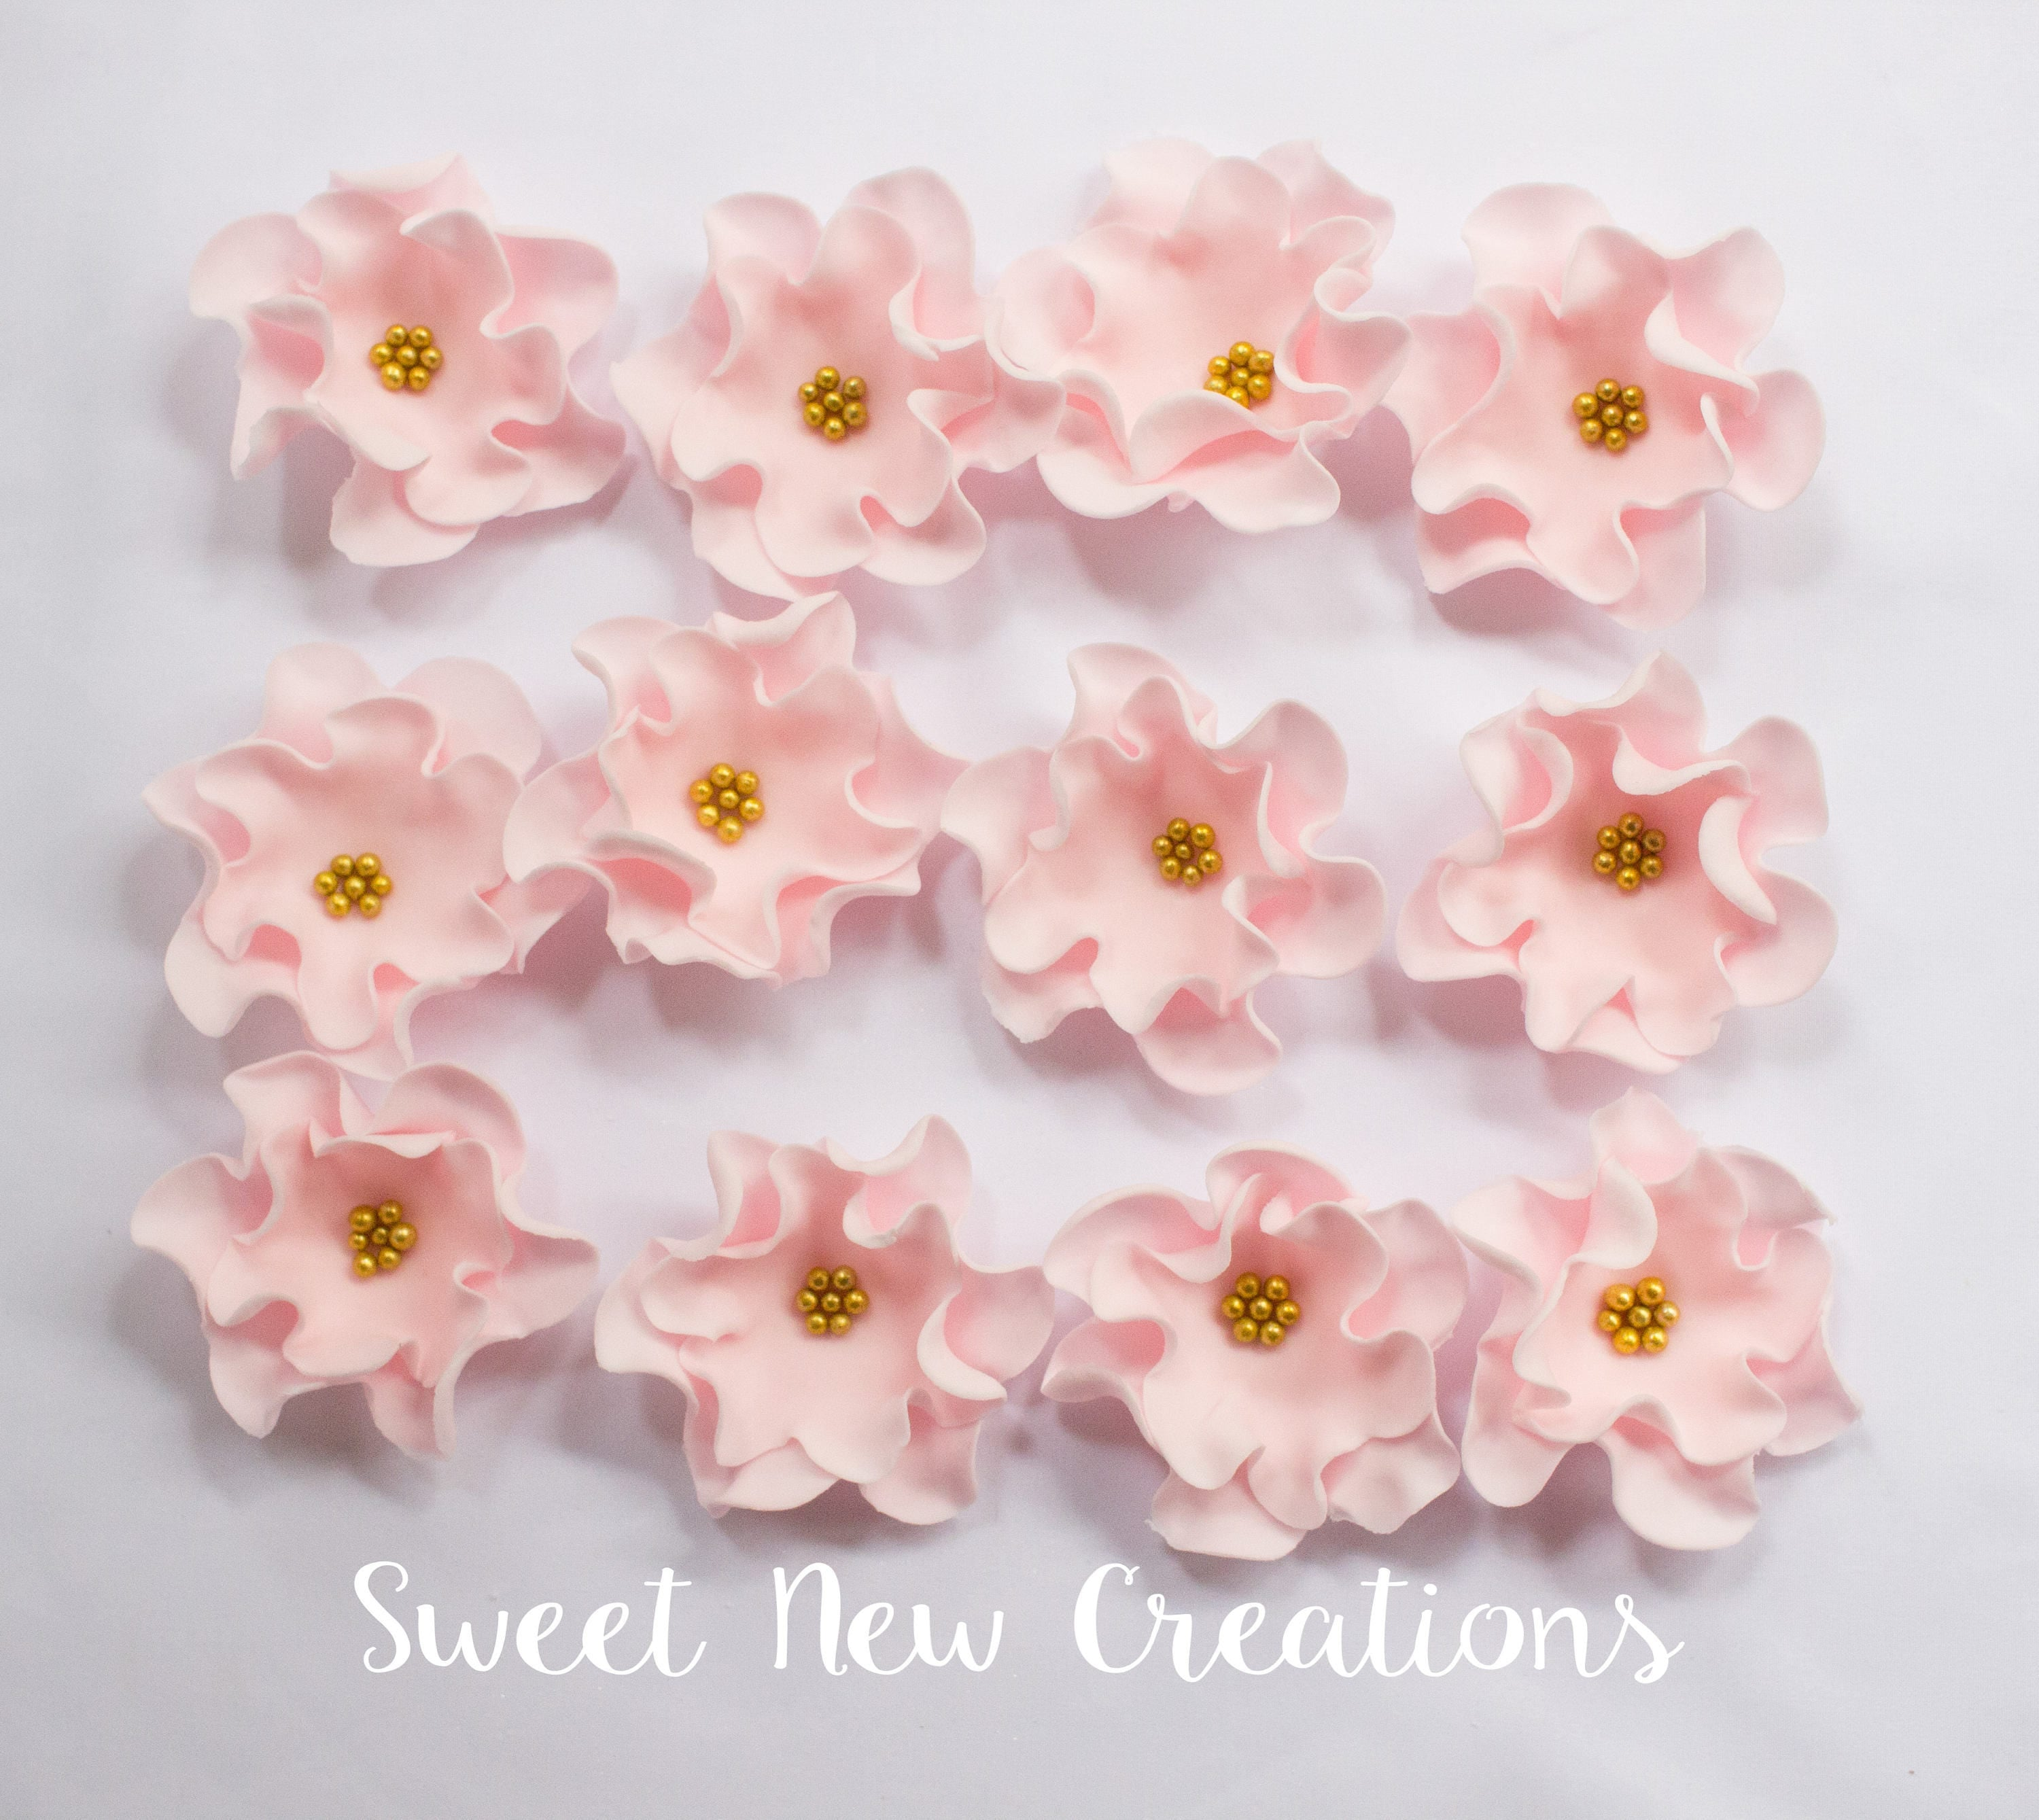 Edible Flowers 25 Vintage Soft Pink Fondant Flowers Cupcake Toppers